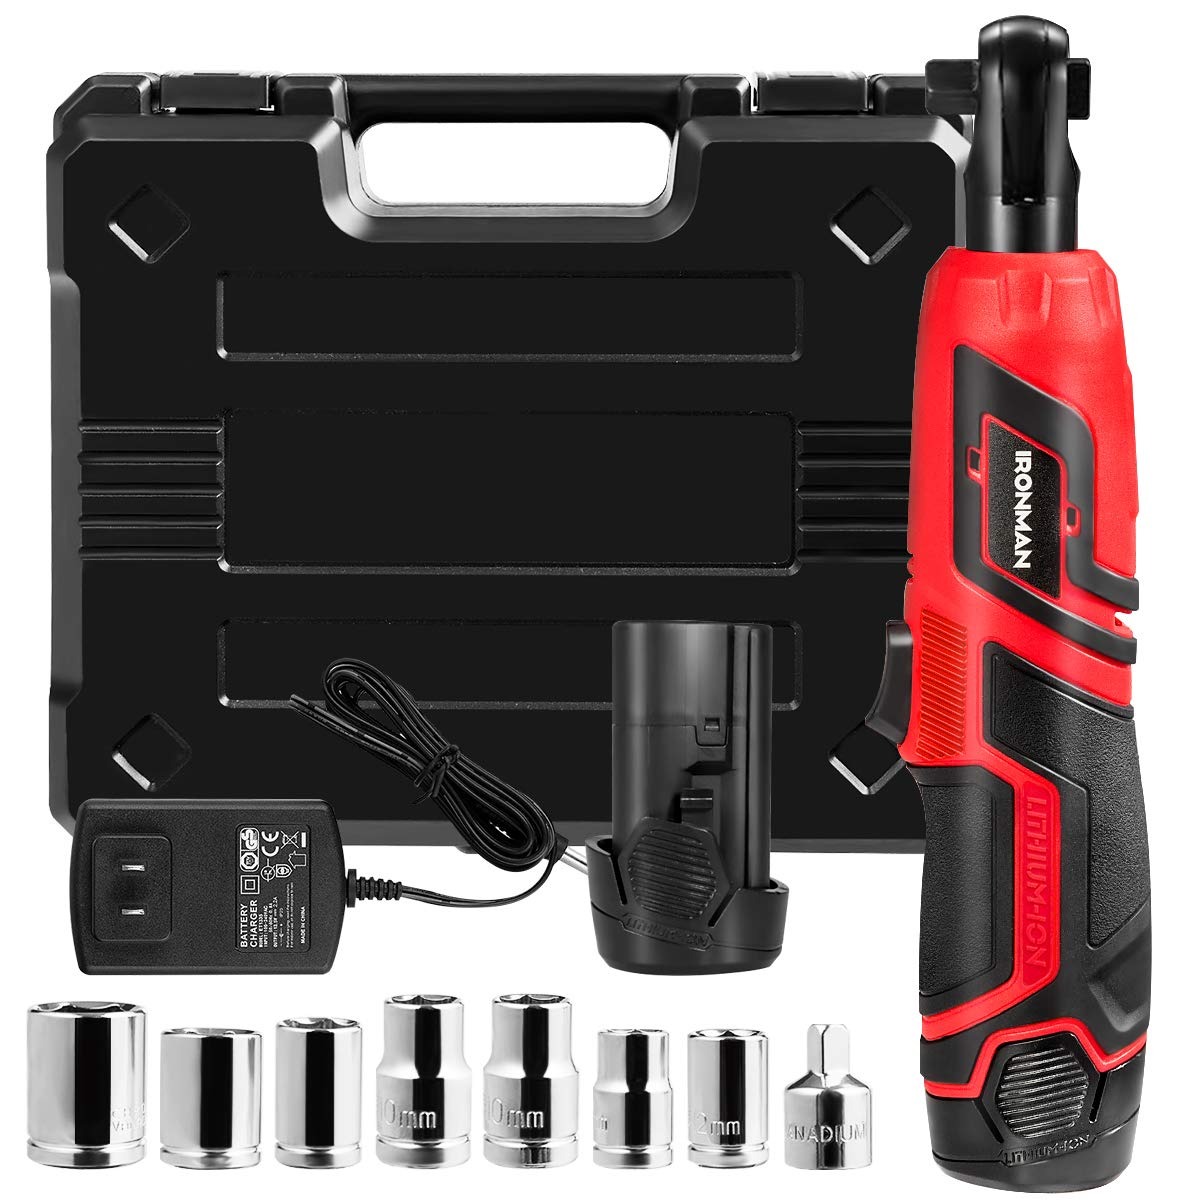 Goplus Cordless 3/8'' Electric Ratchet Wrench Set, with Double 12V Lithium-Ion Battery, Carrying Case, Wrench Torque Tool w/ 1-piece 1/4'' Socket Adapter and 7-piece 3/8'' Metric Sockets